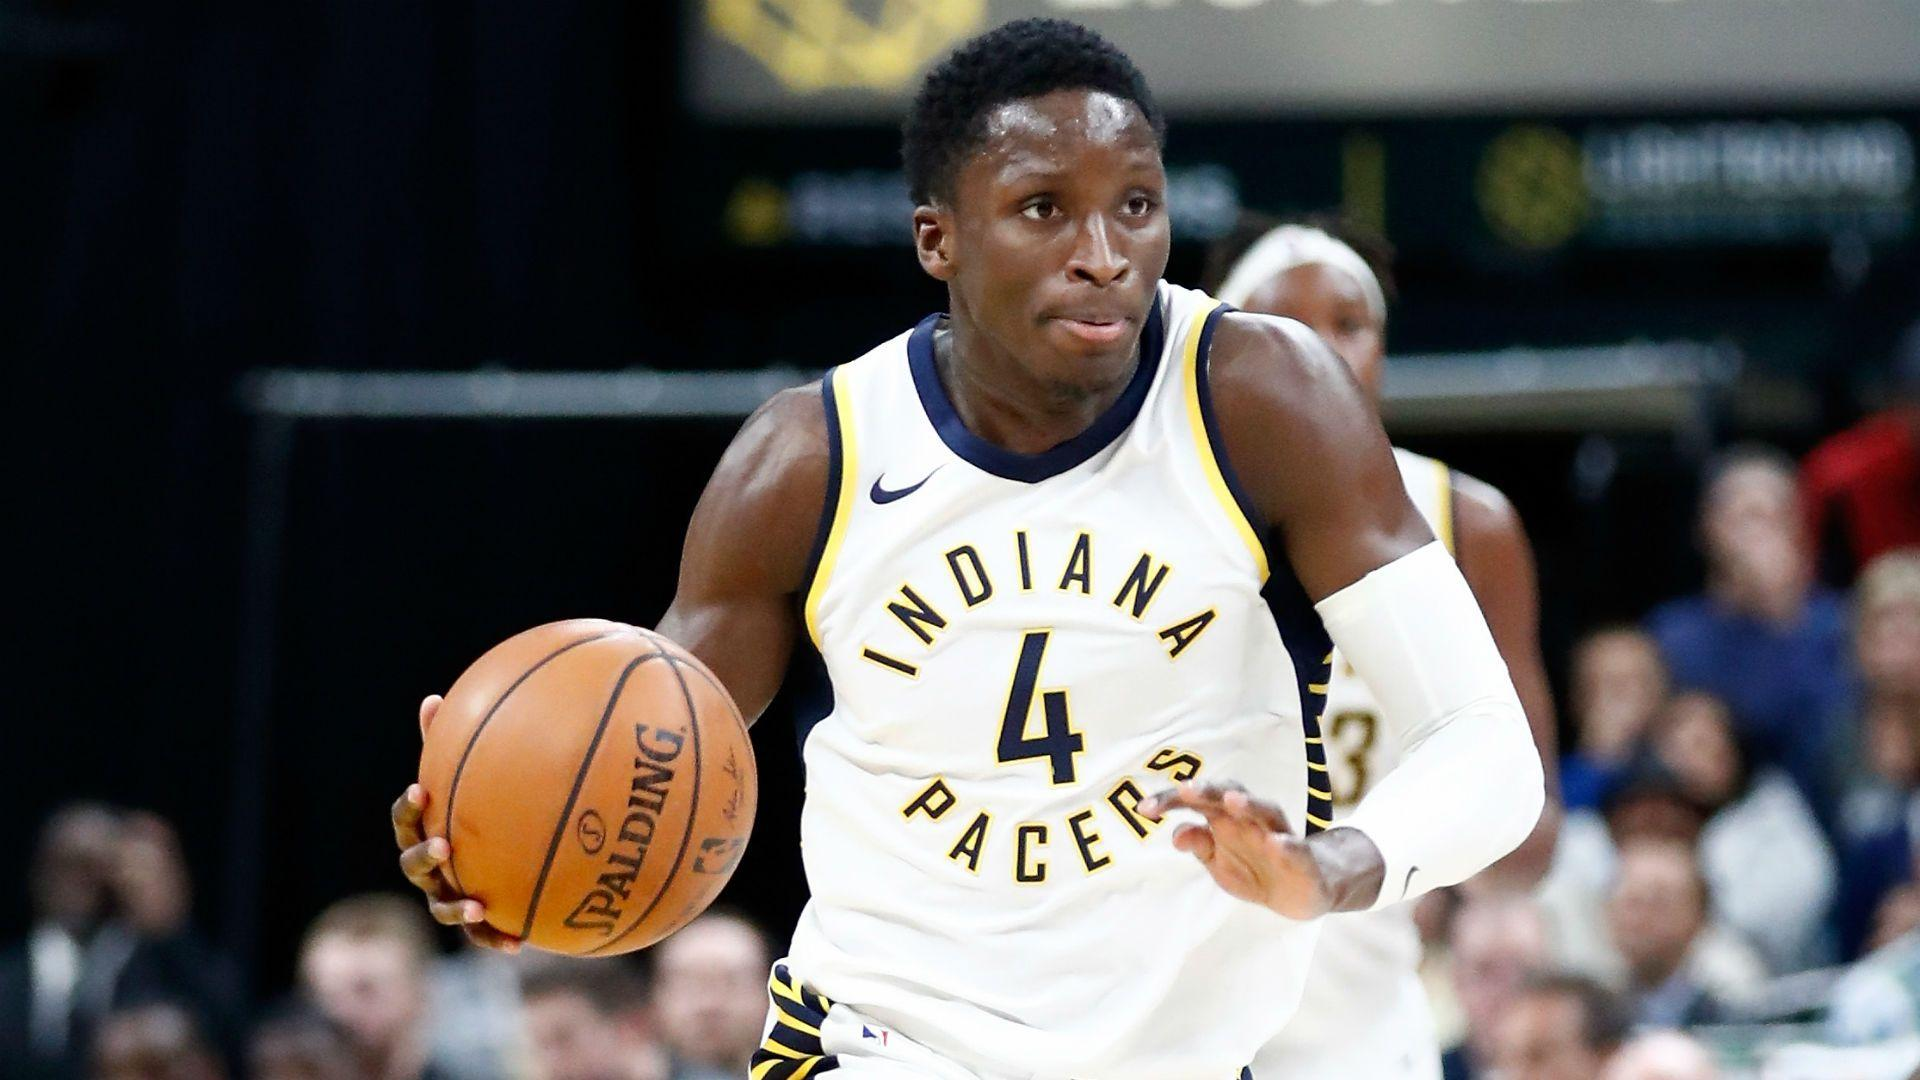 NBA wrap: Victor Oladipo's career performance keeps Pacers rolling